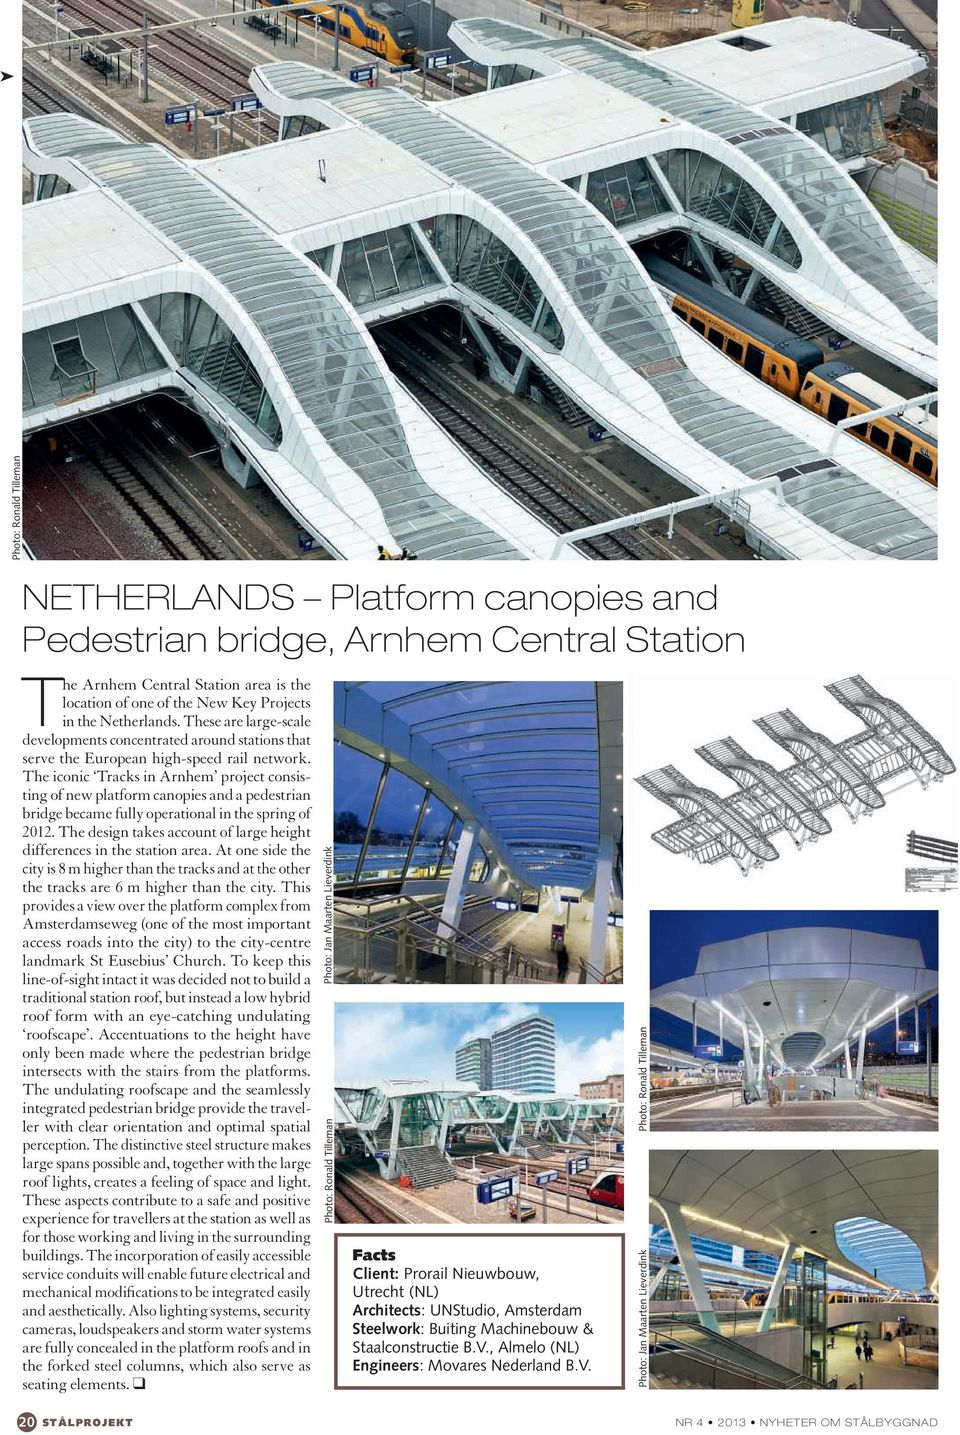 The iconic Tracks in Arnhem project consisting of new platform canopies and a pedestrian bridge became fully operational in the spring of 2012.